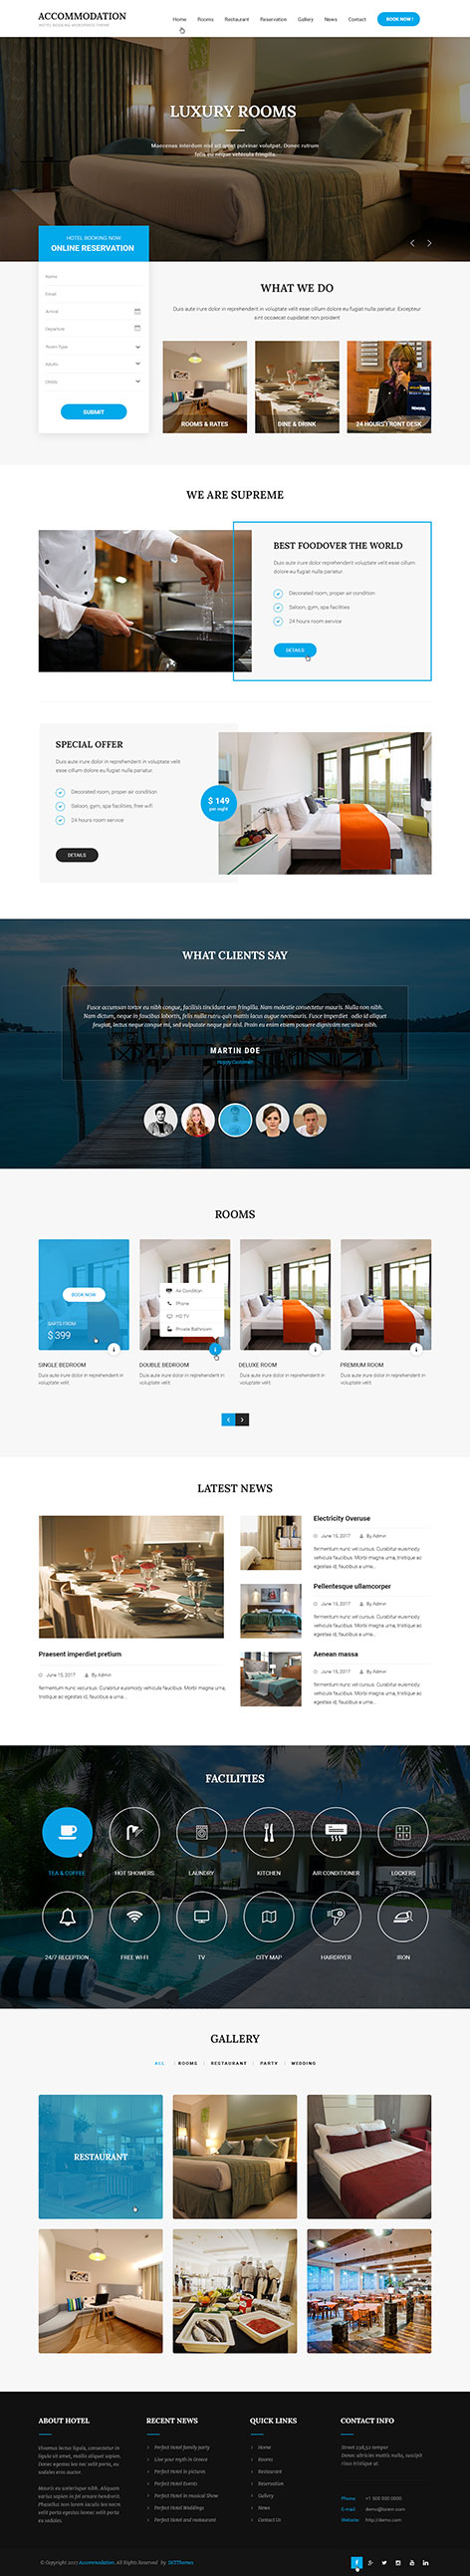 accommodation WordPress theme